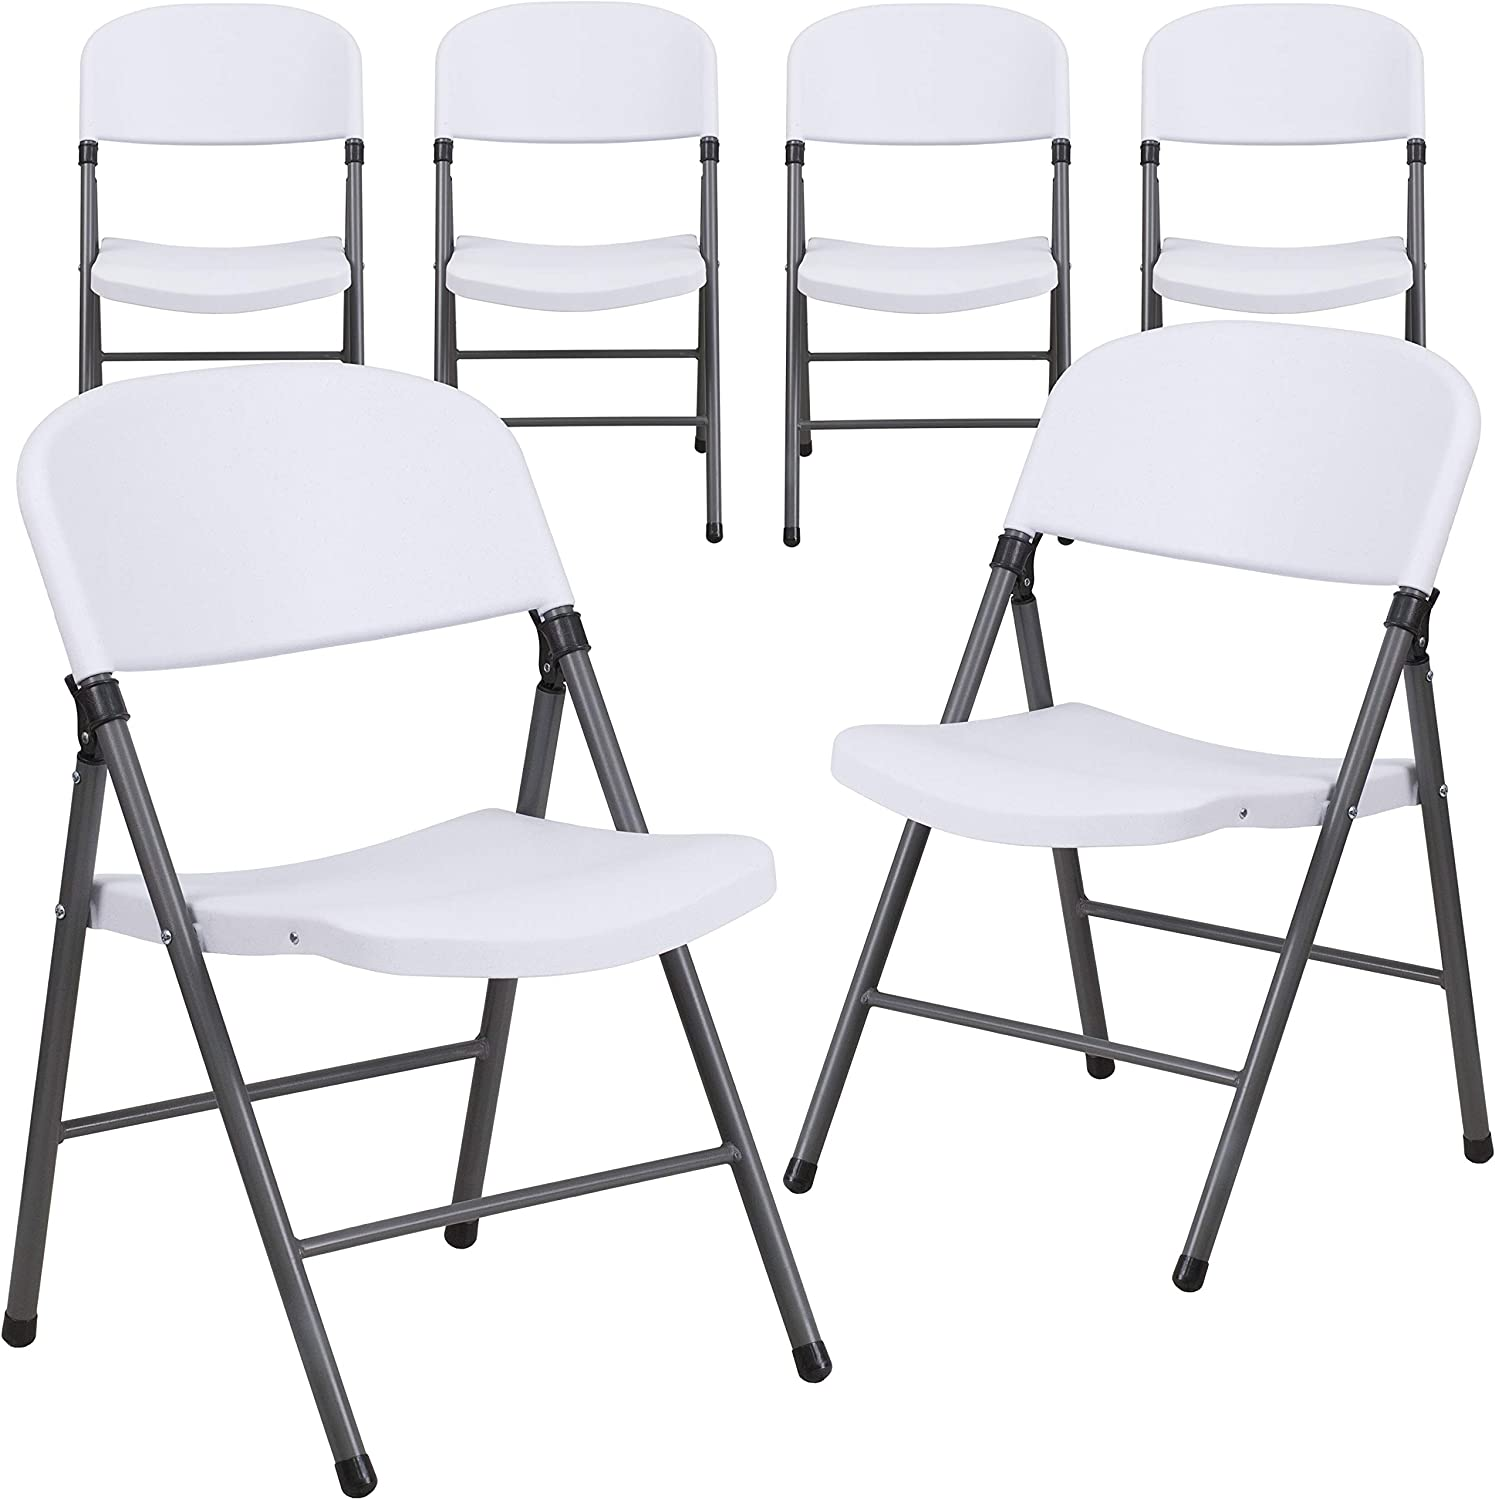 Flash Furniture 6 Pk. HERCULES Series 330 lb. Capacity Granite White Plastic Folding Chair with Charcoal Frame: Furniture & Decor